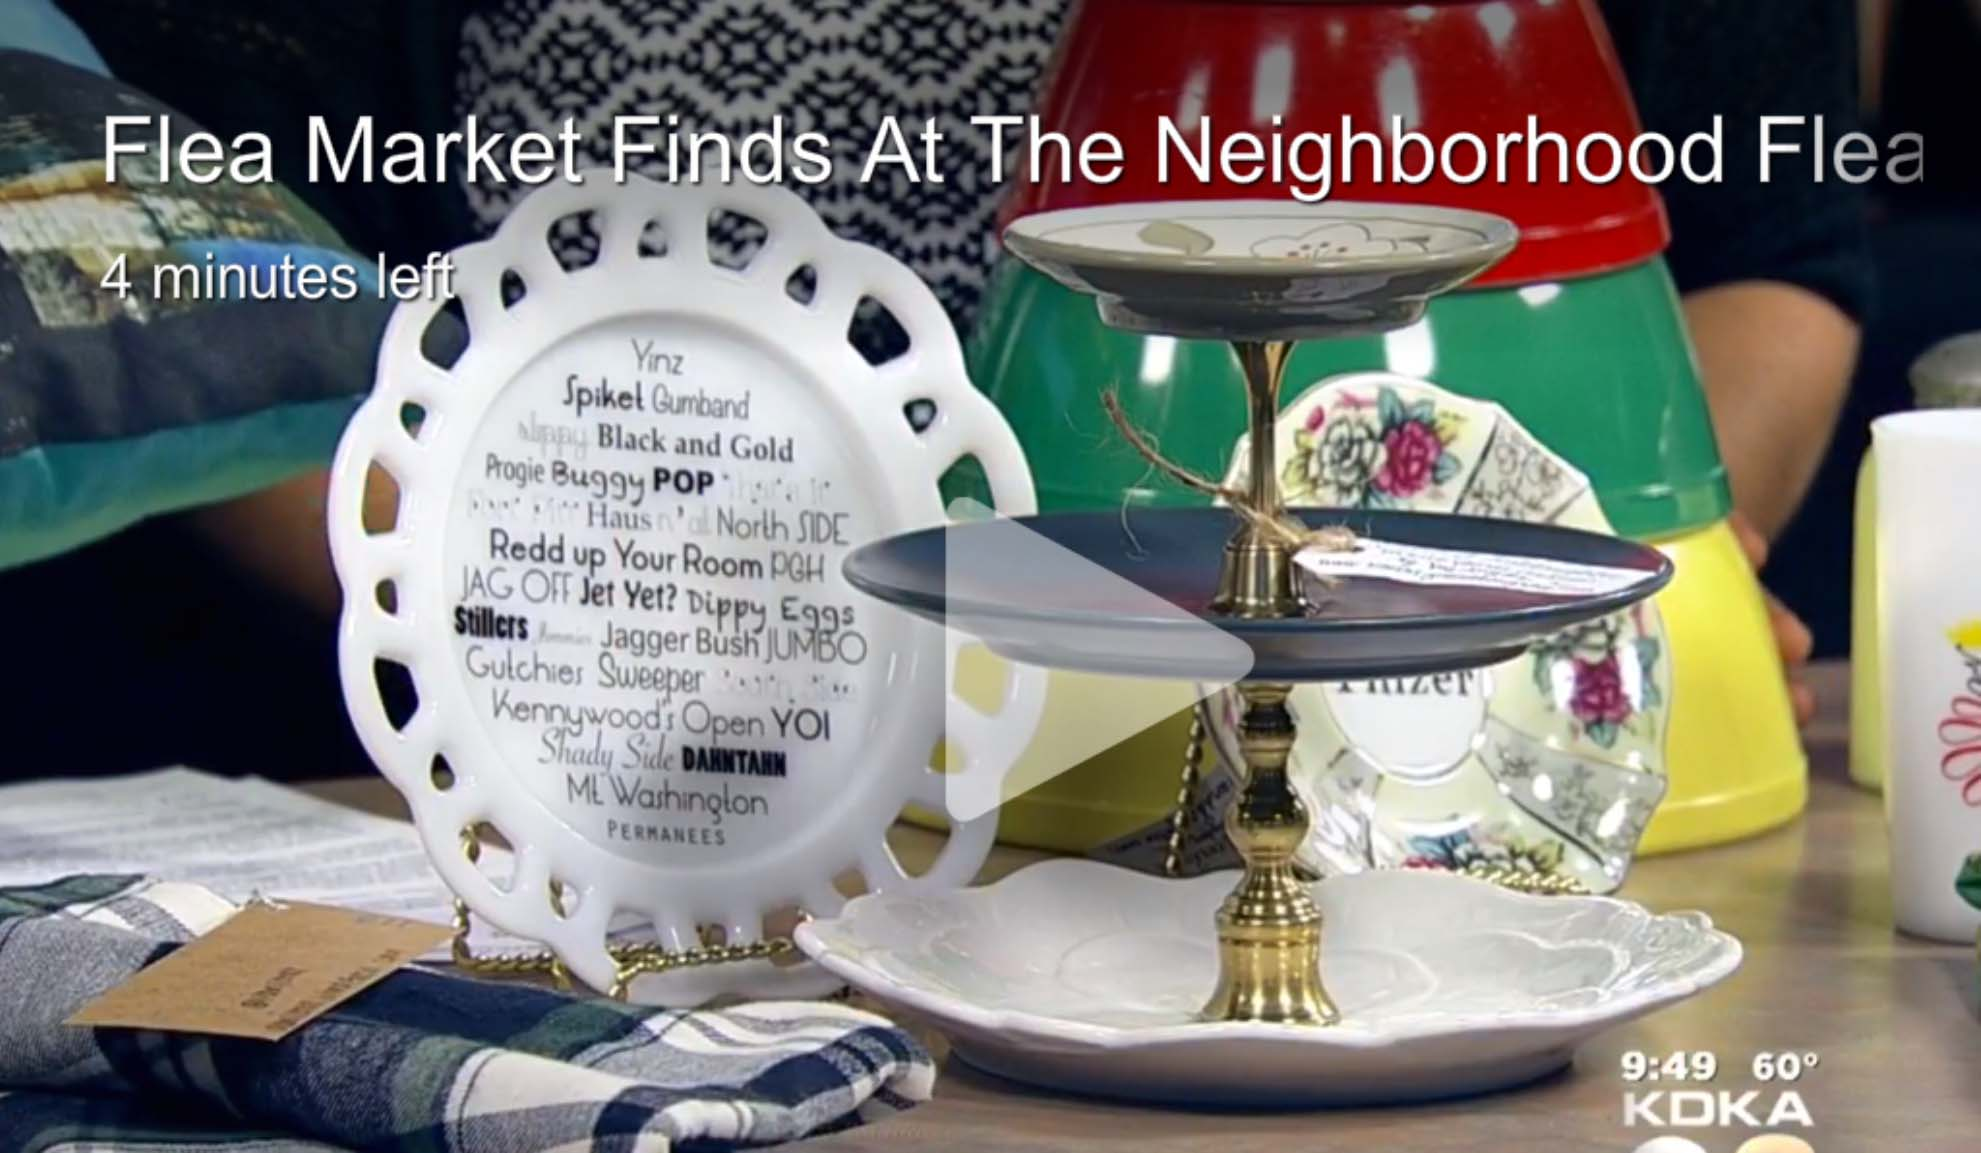 Pittsburgh Today Live : Aired 9/11/15 featured @ Minute Marker 2:05  http://pittsburgh.cbslocal.com/video/3292722-flea-market-finds-at-the-neighborhood-flea/